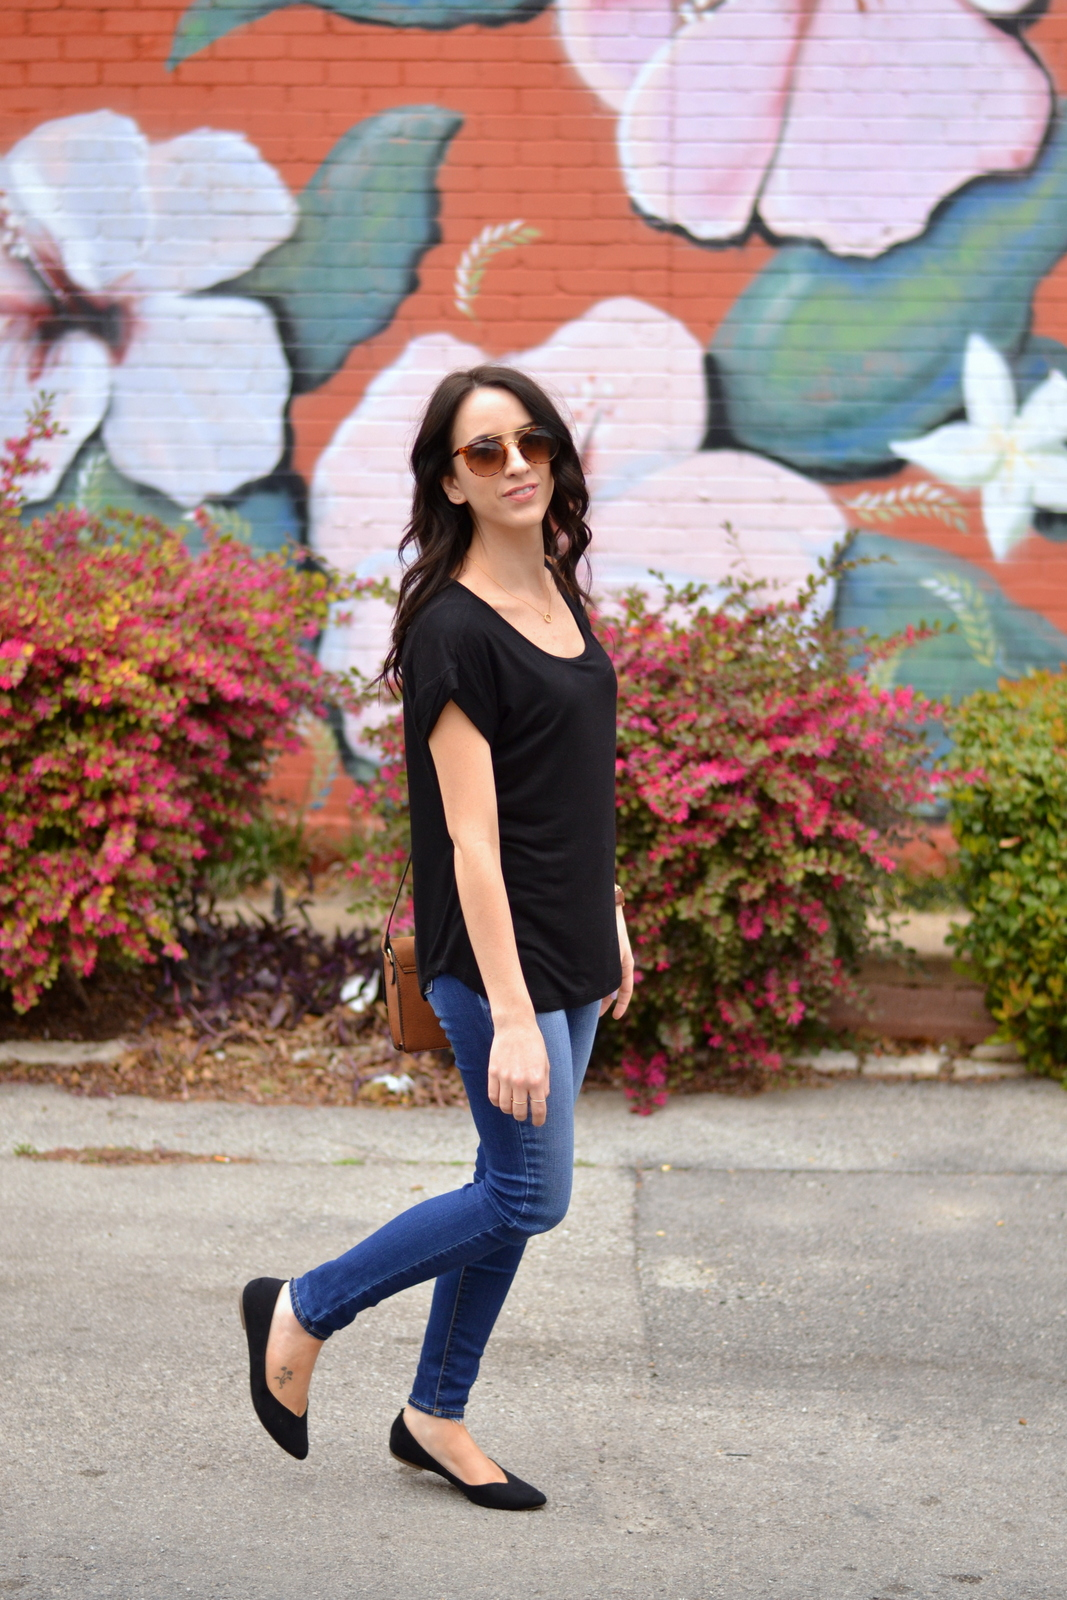 Basic_Outfit_Black_Tee_Jeans_Flats